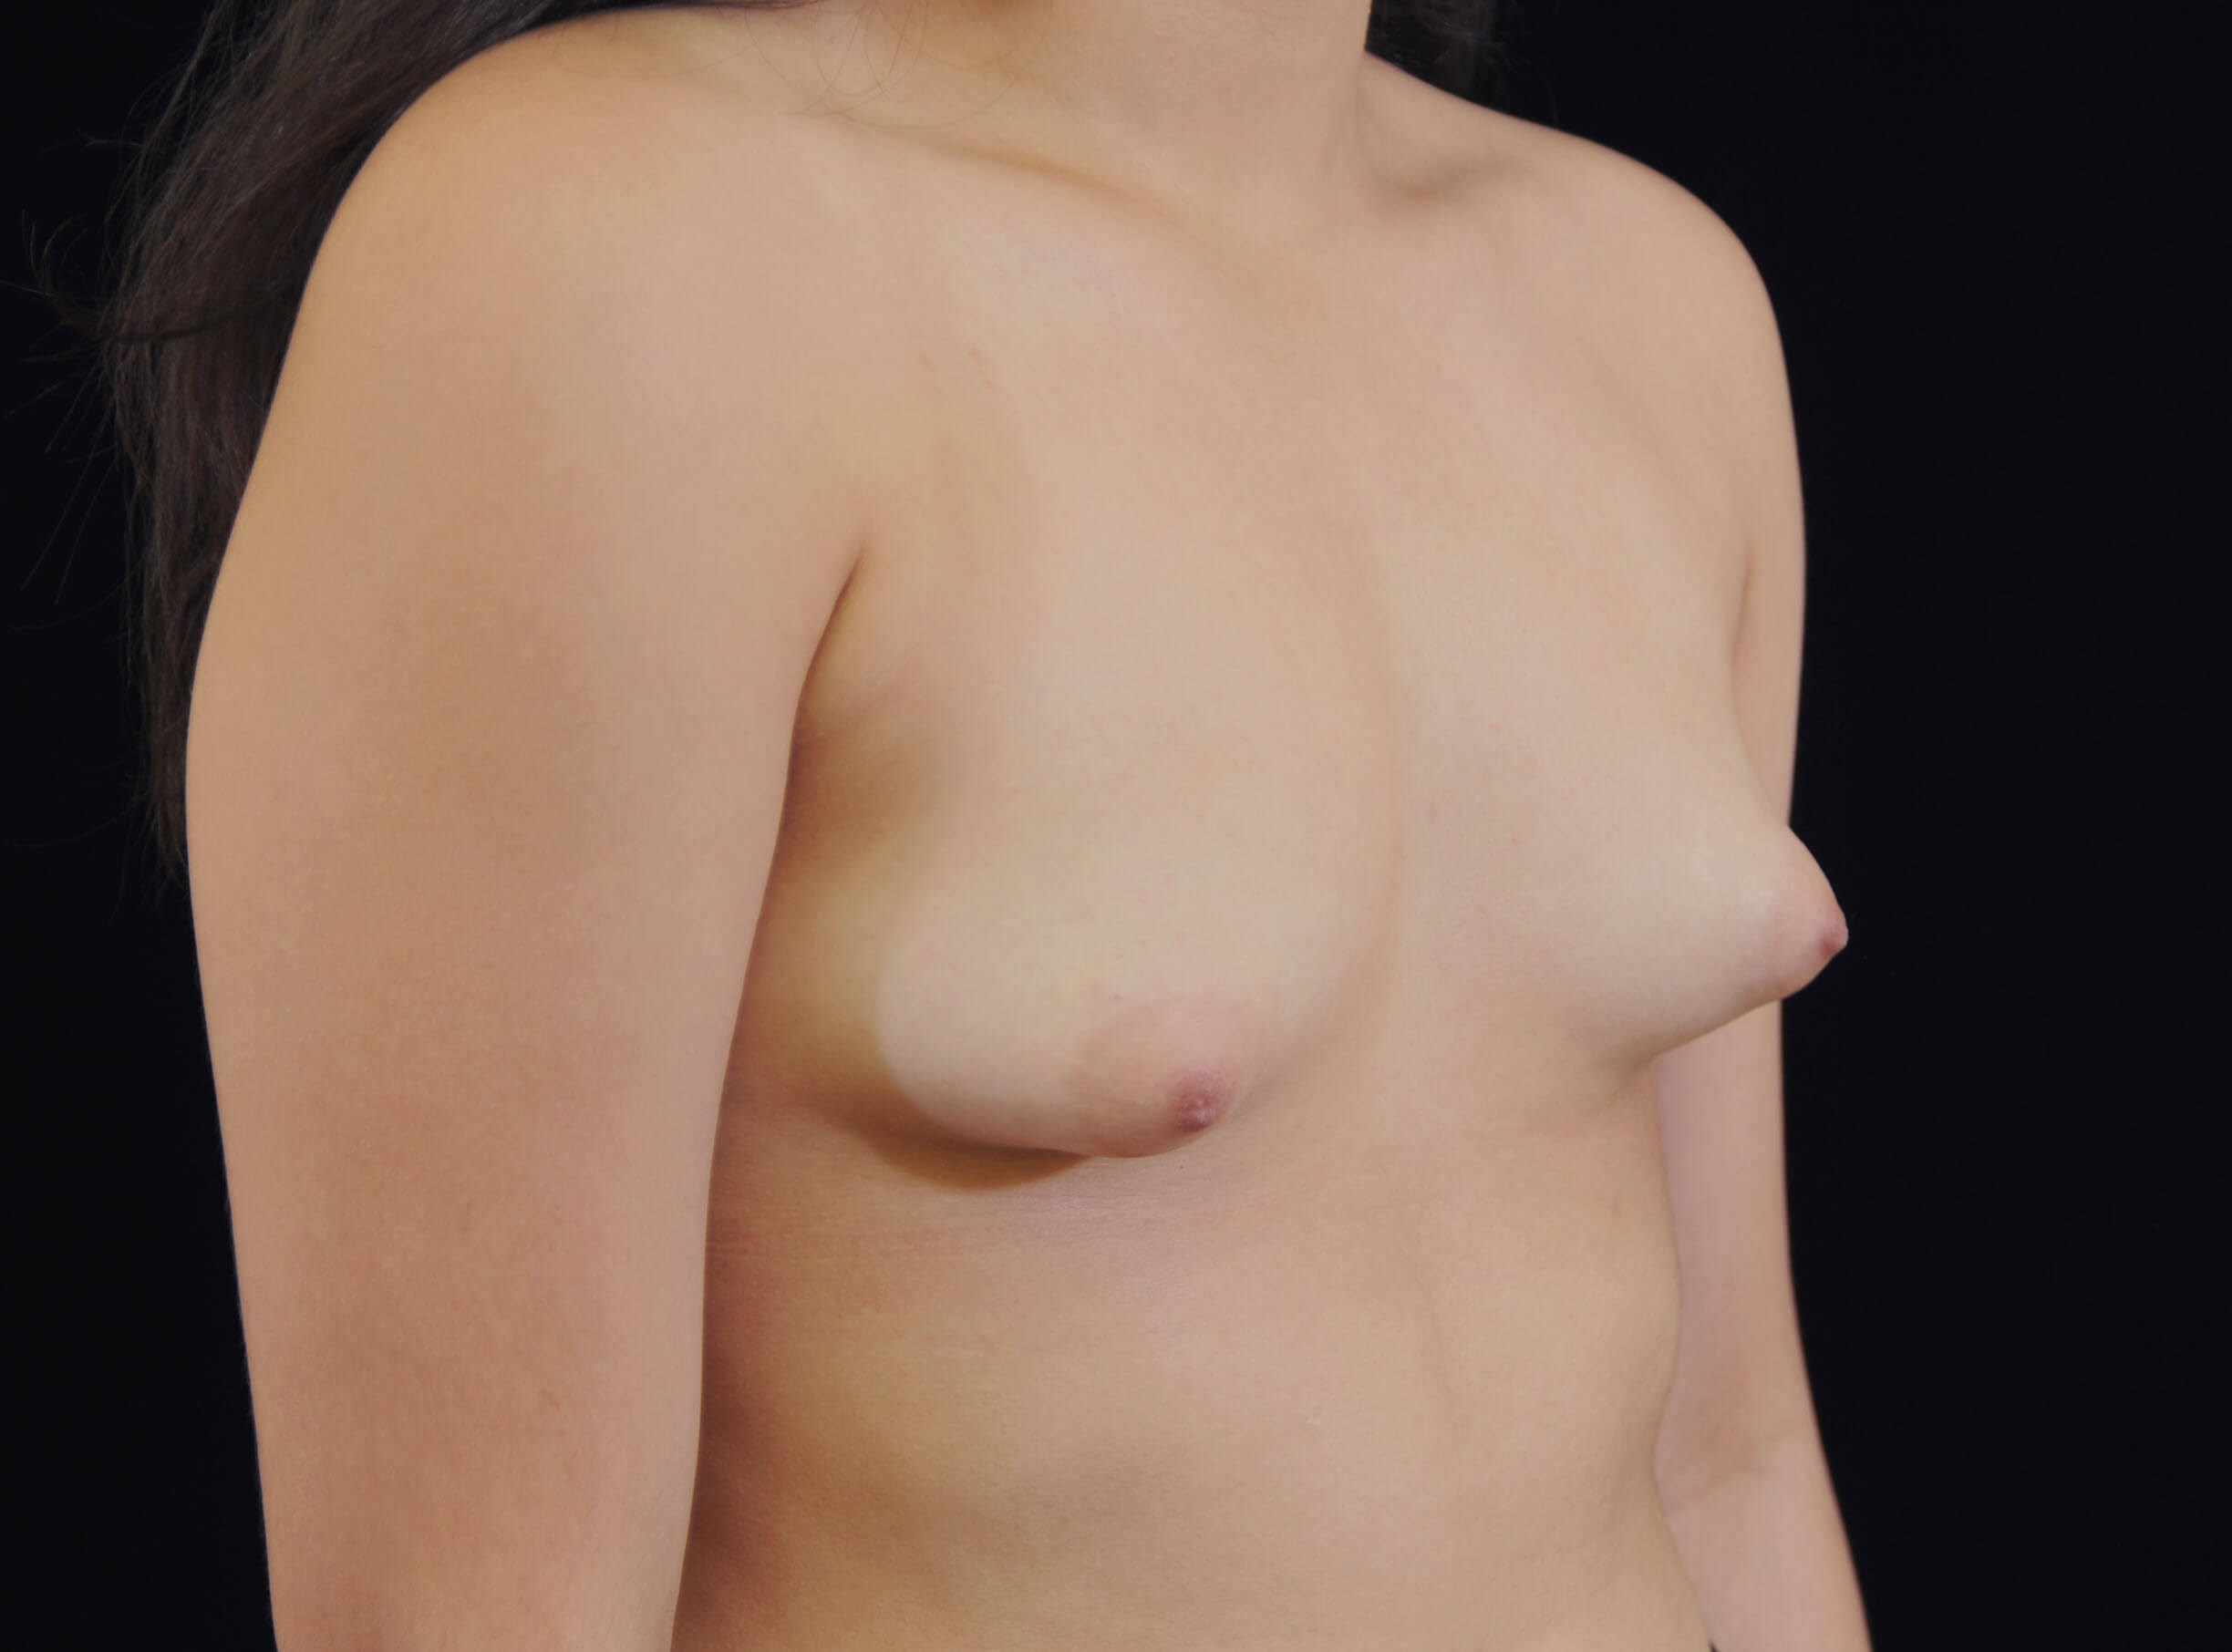 Breast Implants in 19 year old Before-Constricted Breasts